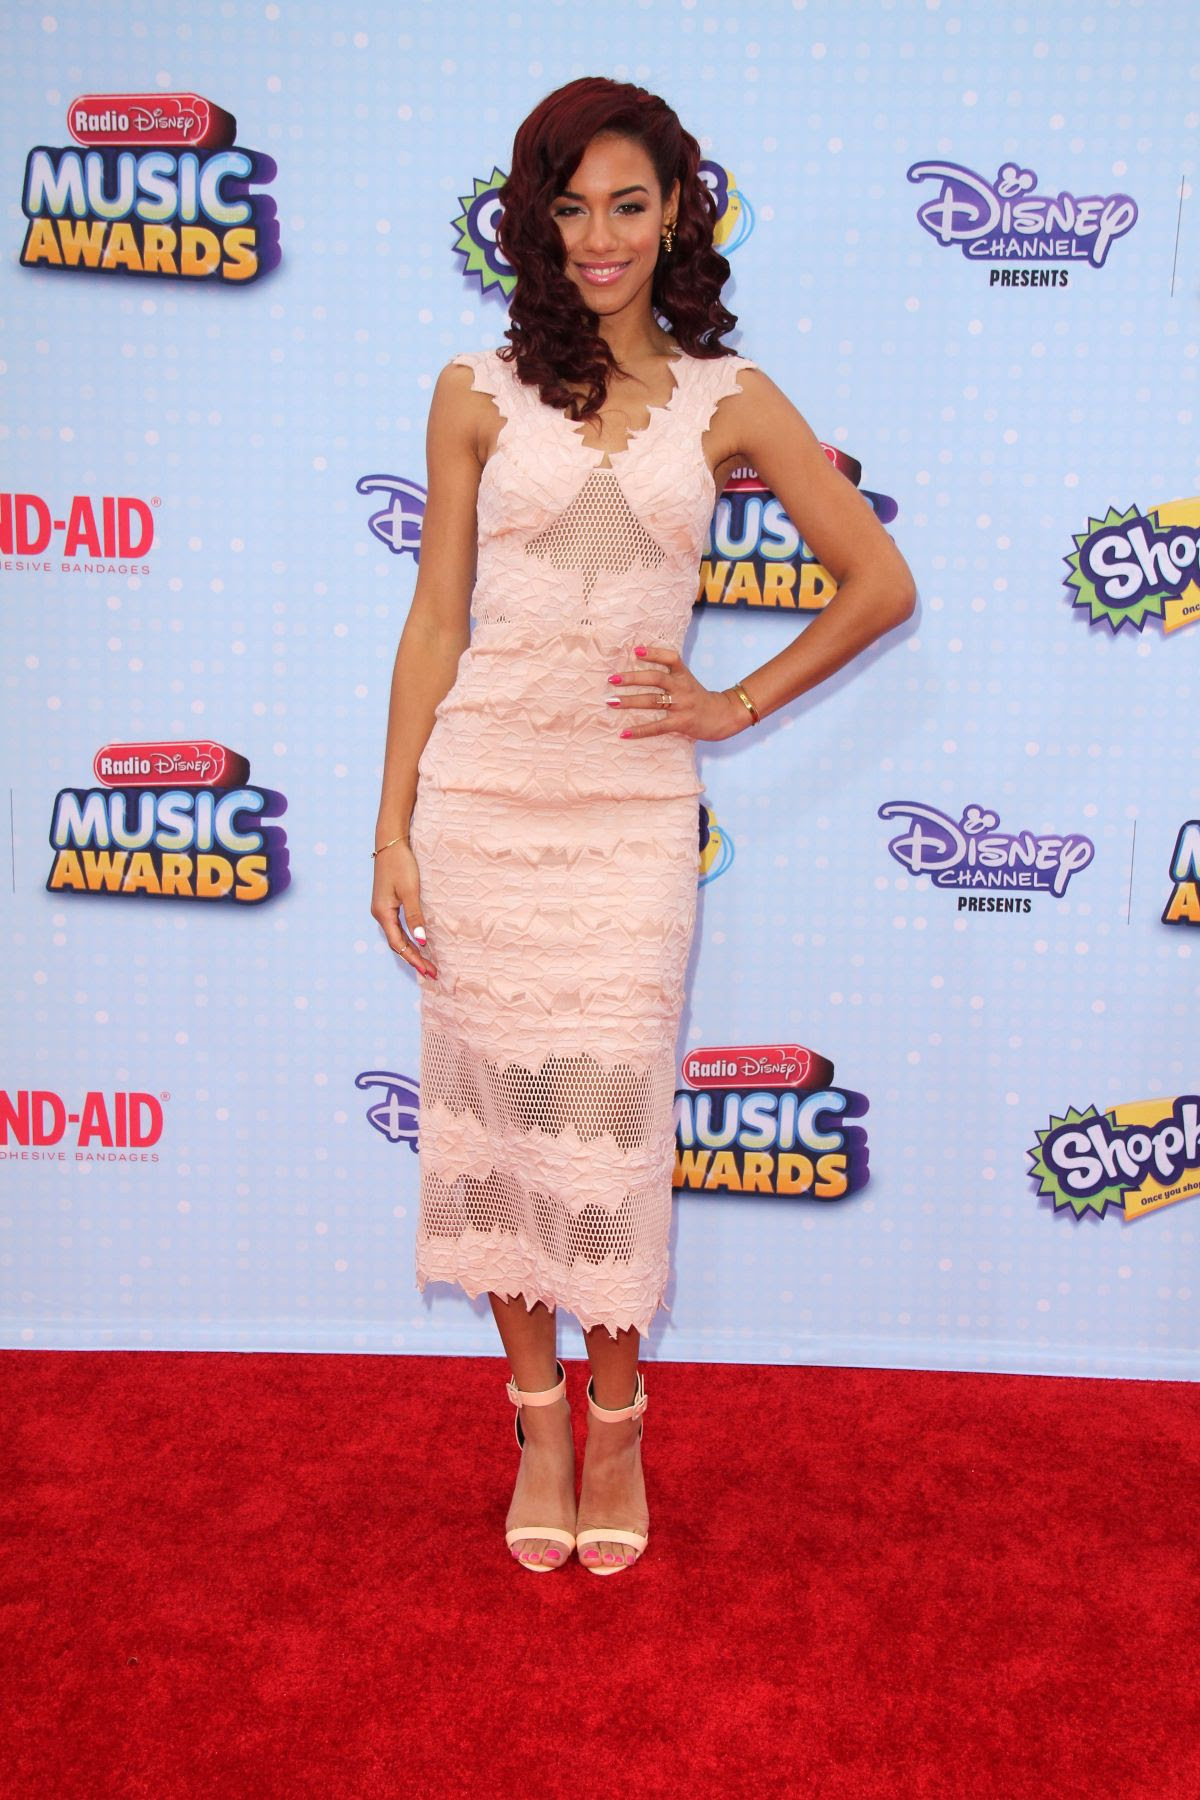 NATALIE LA ROSE at 2015 Radio Disney Music Awards in Los Angeles